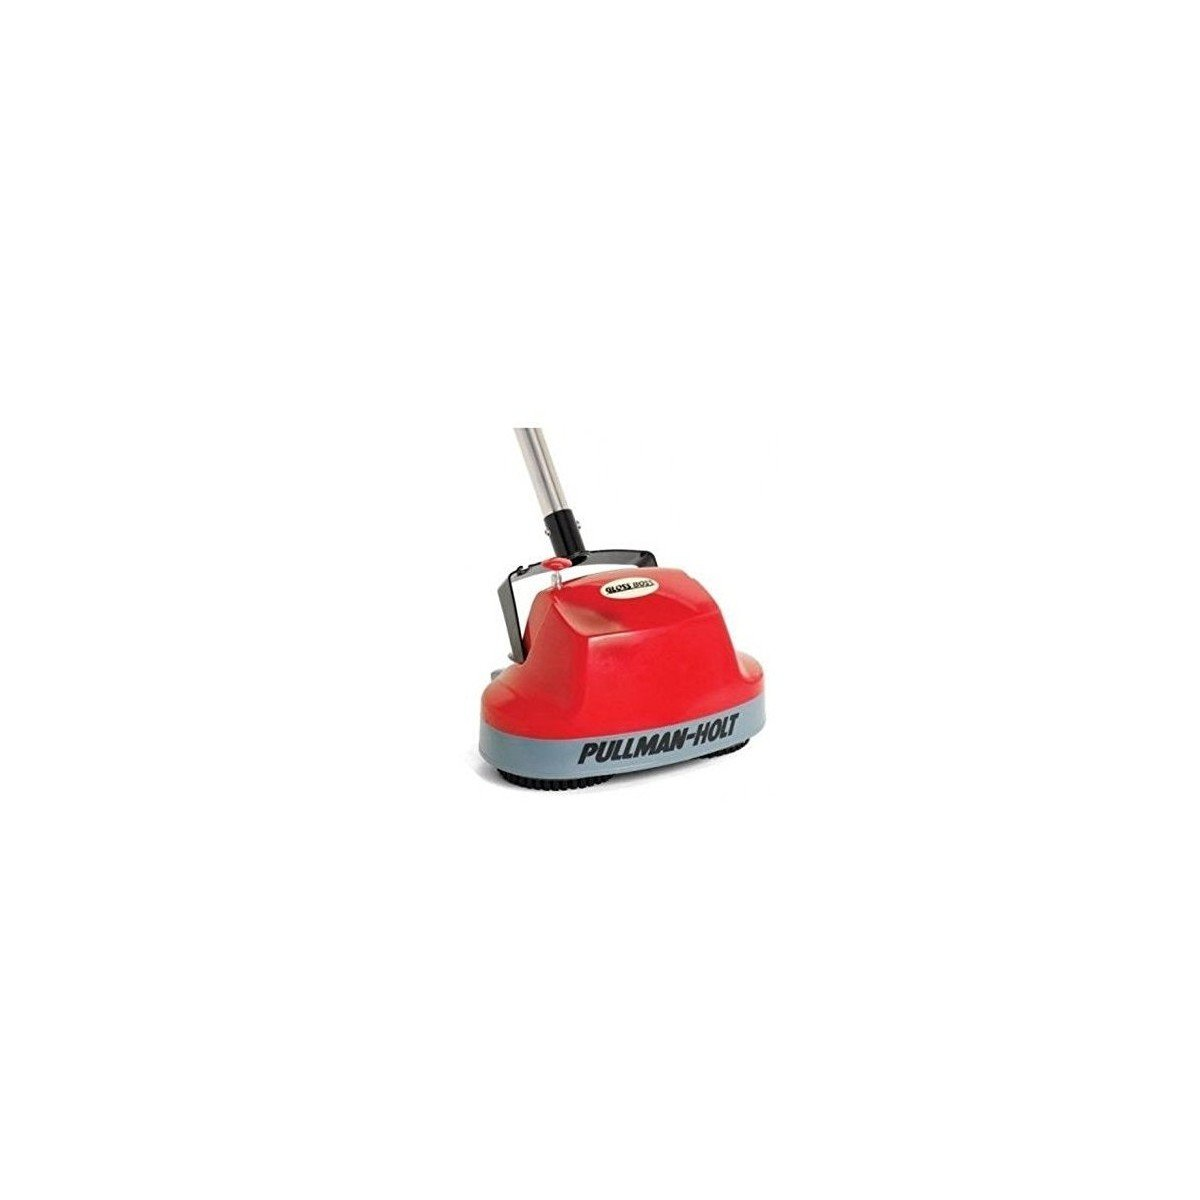 PUL200 - 12MINI SCRUBBER POLISHER WITH TWO BRUSHES - PULLMAN Johnny Vac